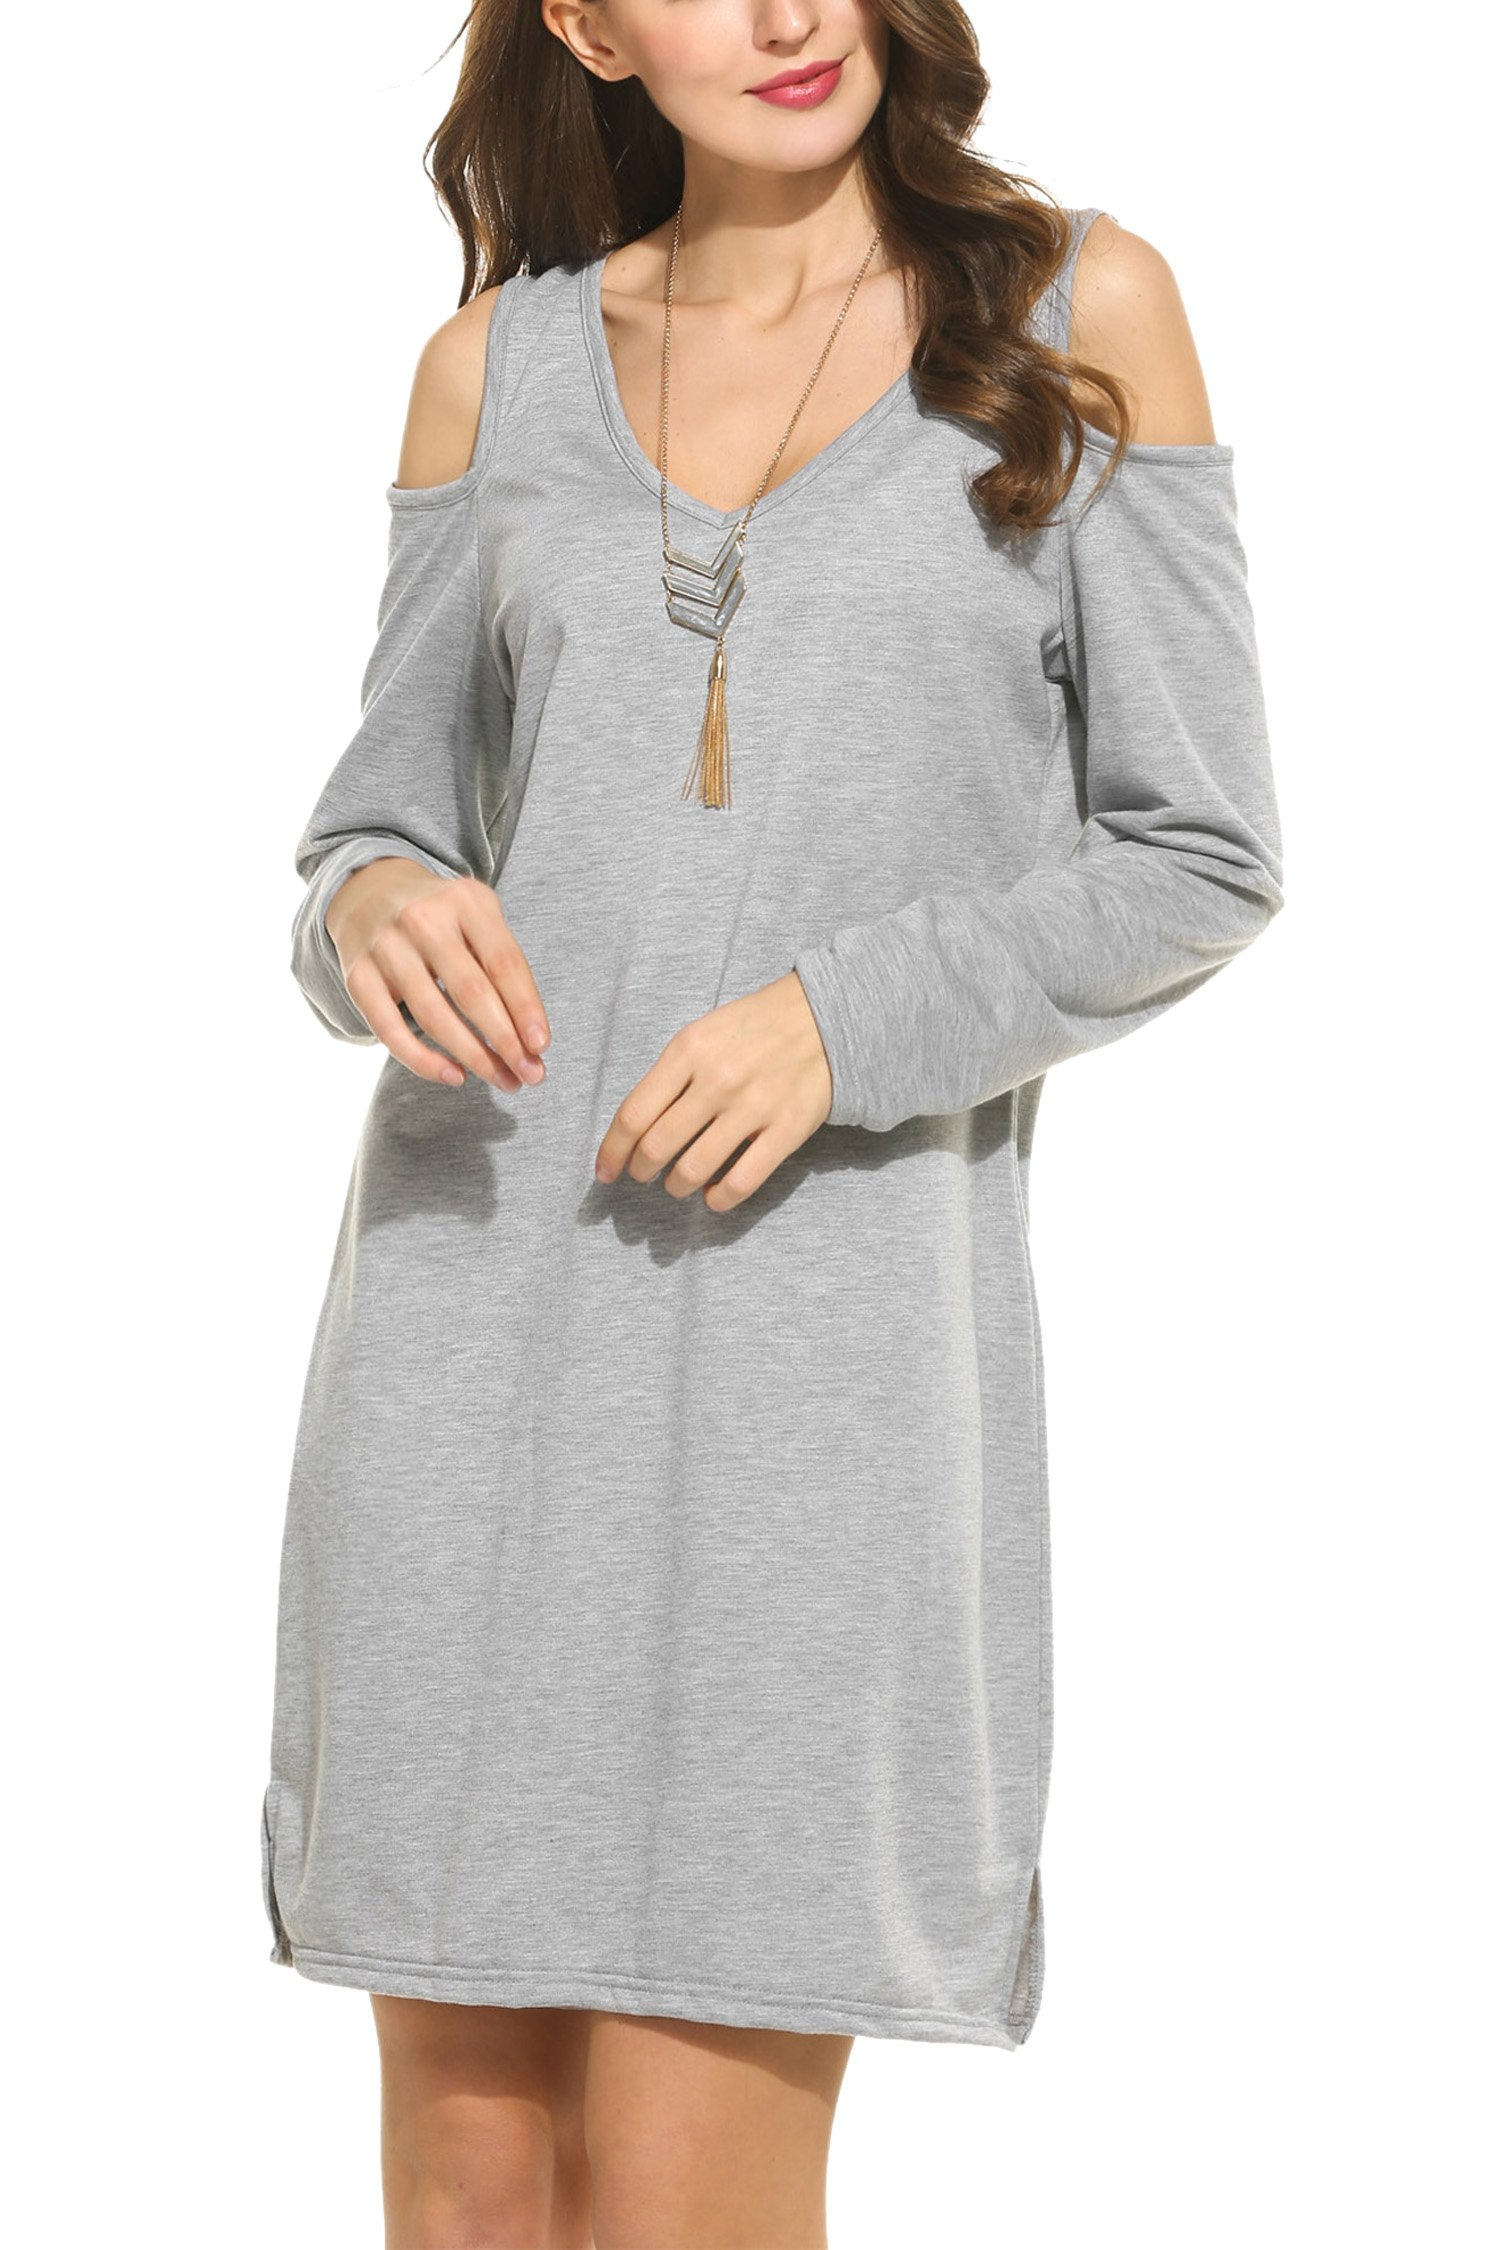 Meaneor Women's Sexy Cold Shoulder Mini Dress with V Neck Hollow Out